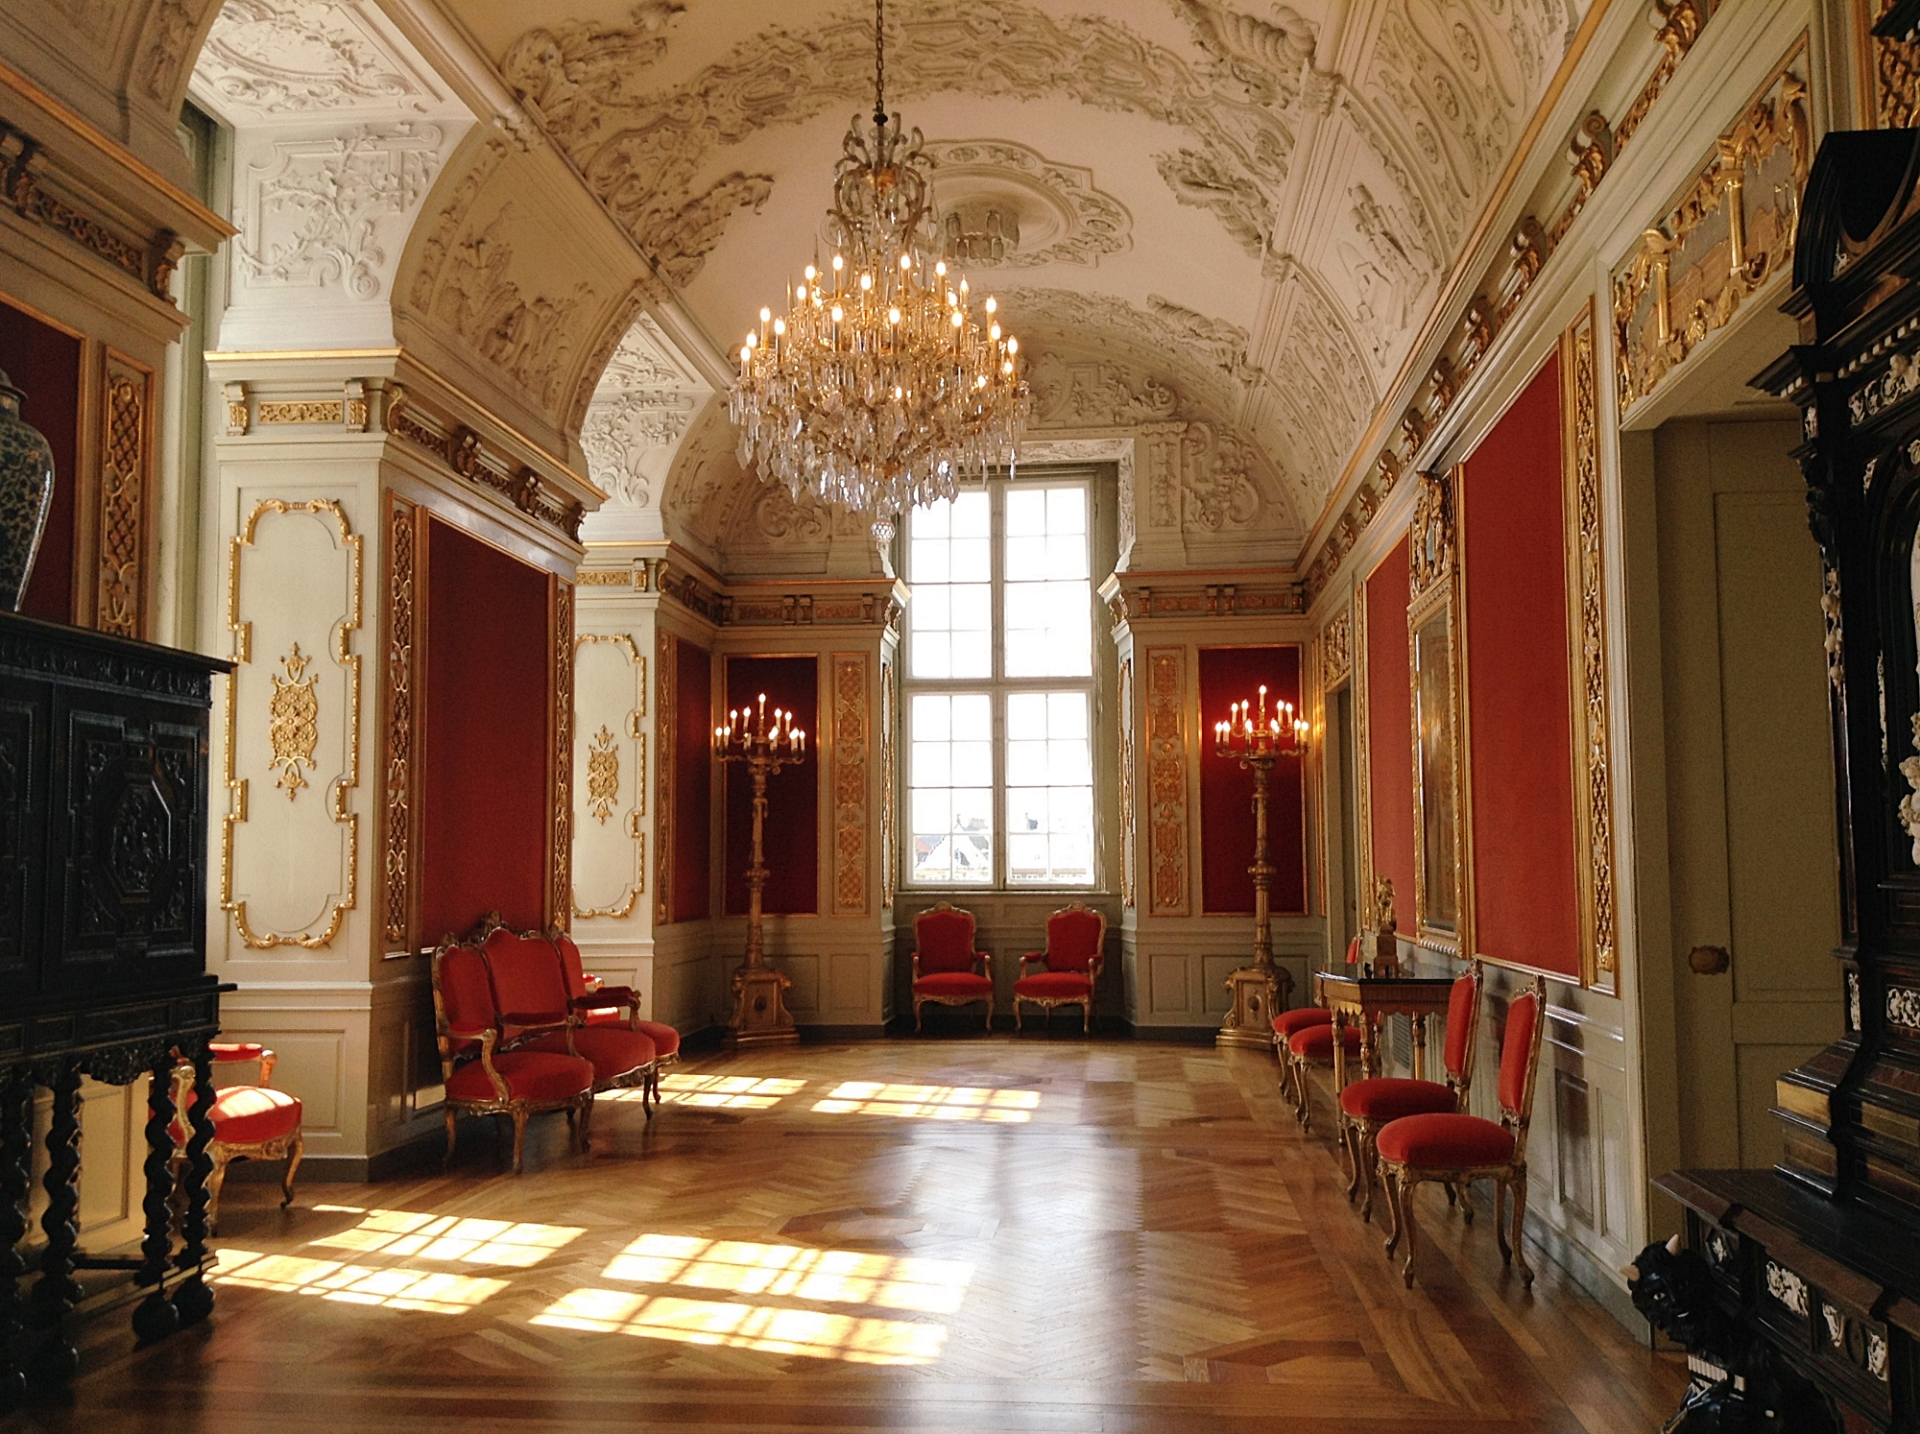 Christiansborg Palace from inside